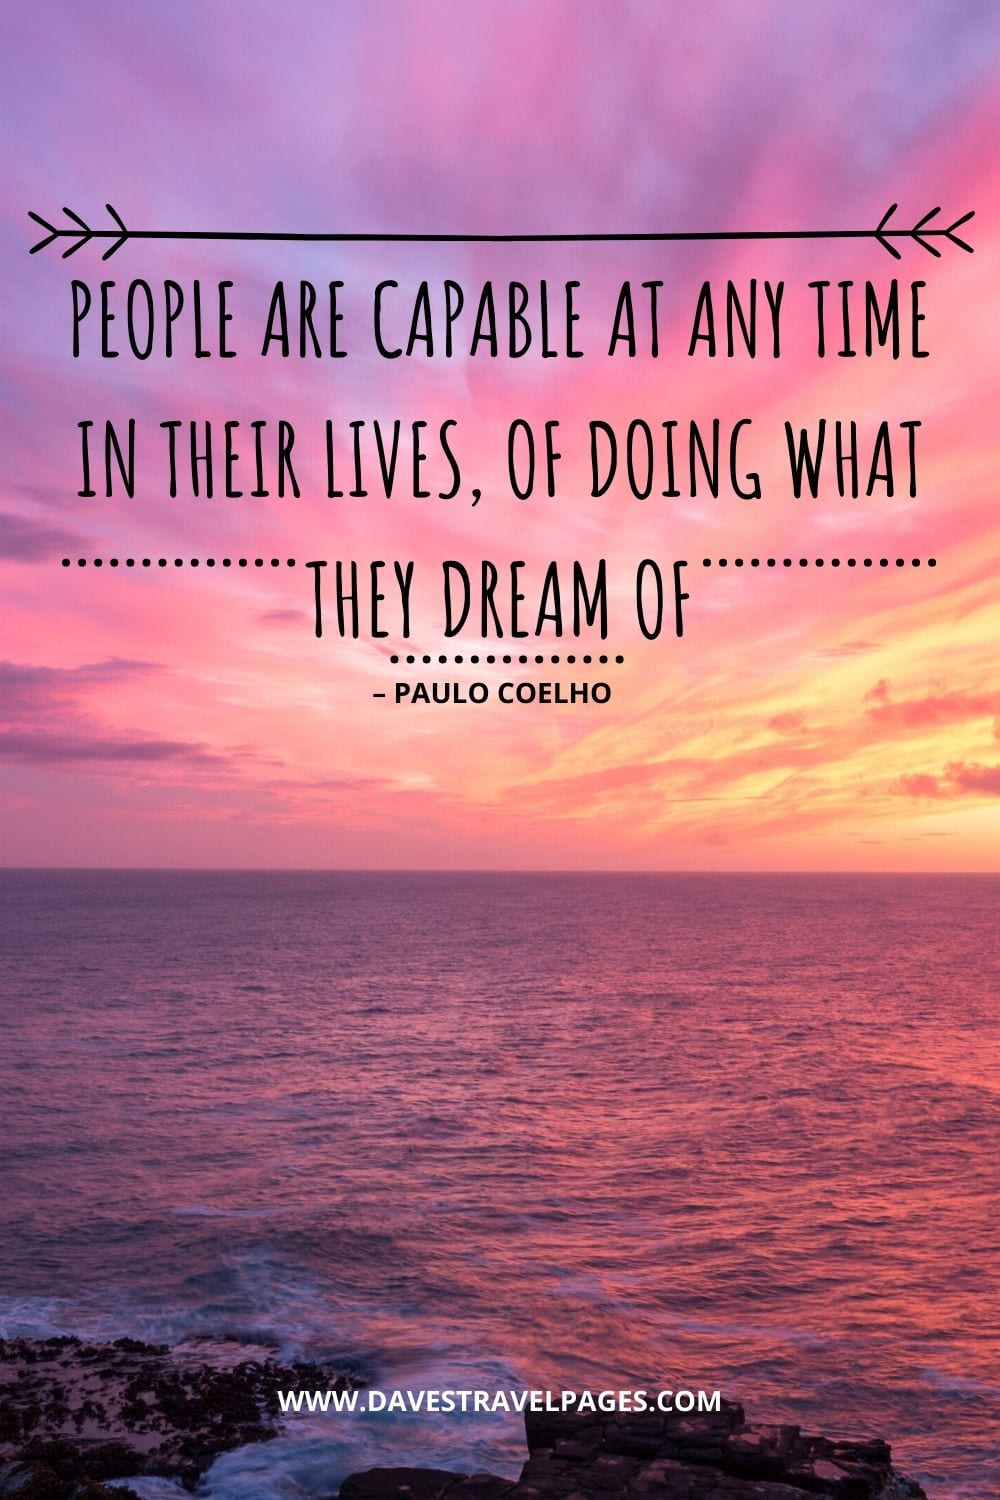 """People are capable at any time in their lives, of doing what they dream of."" – Paulo Coelho quotes and sayings"